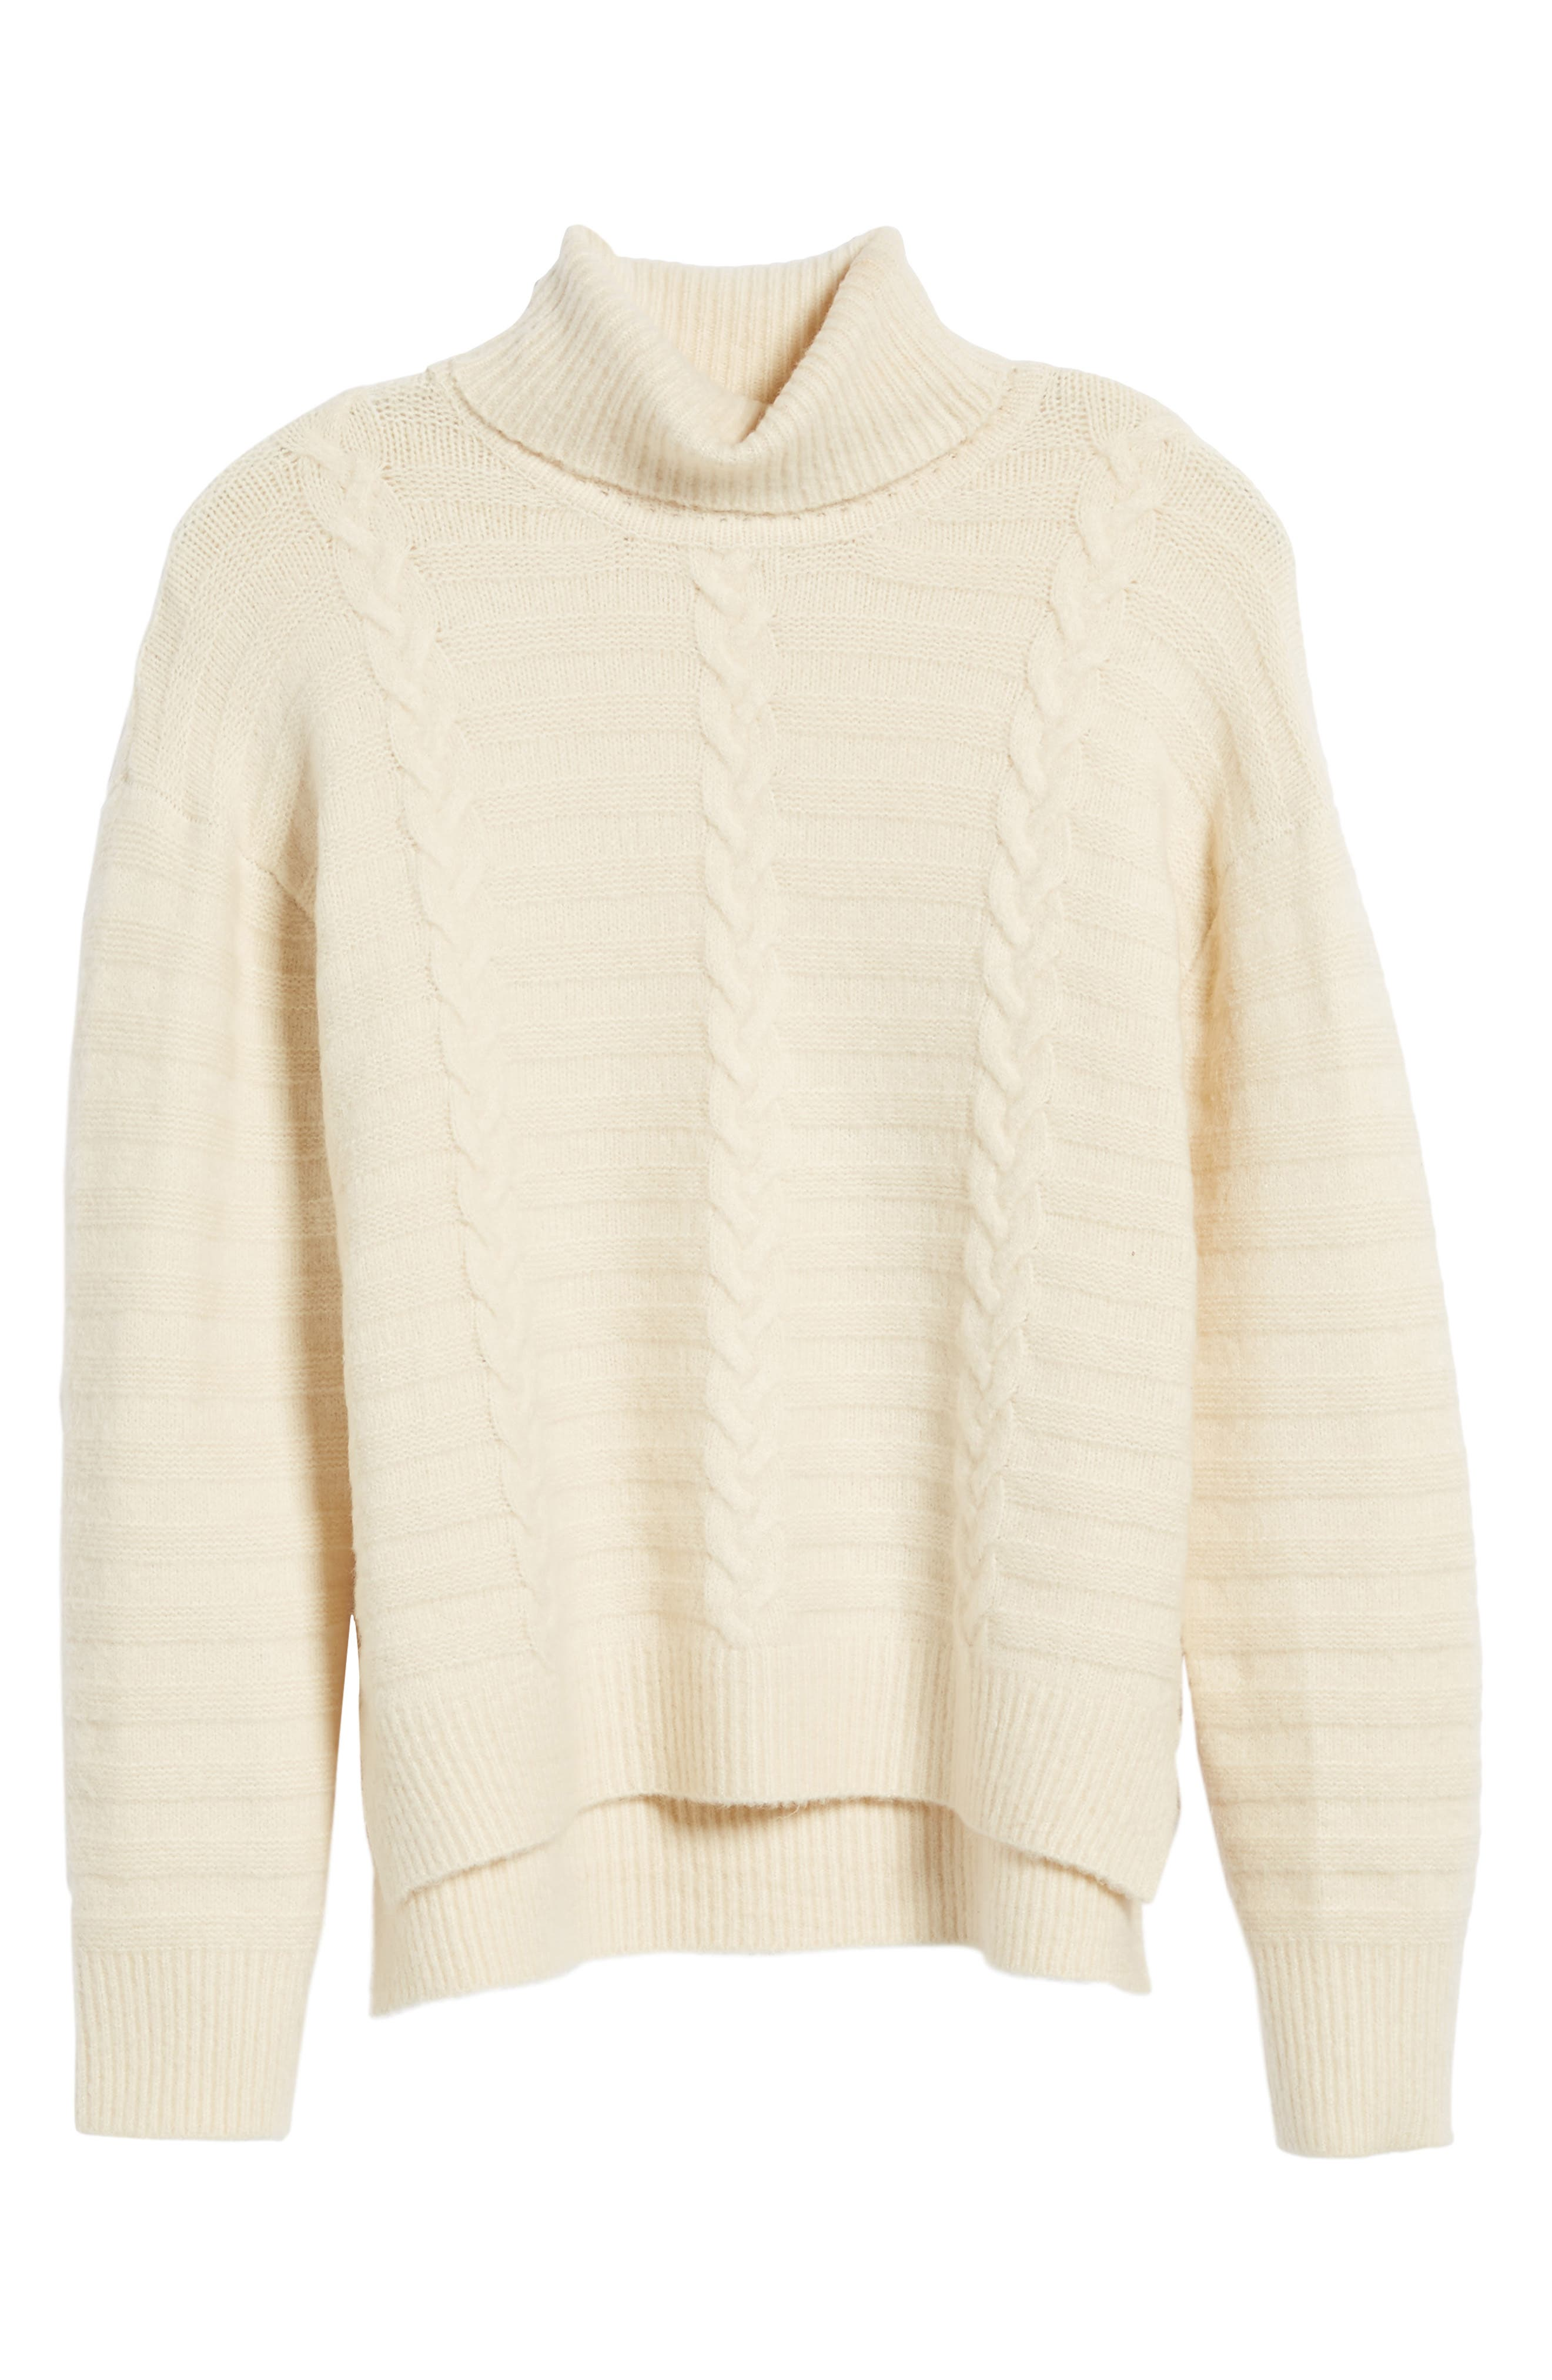 Turtleneck Sweater,                             Alternate thumbnail 6, color,                             Ivory